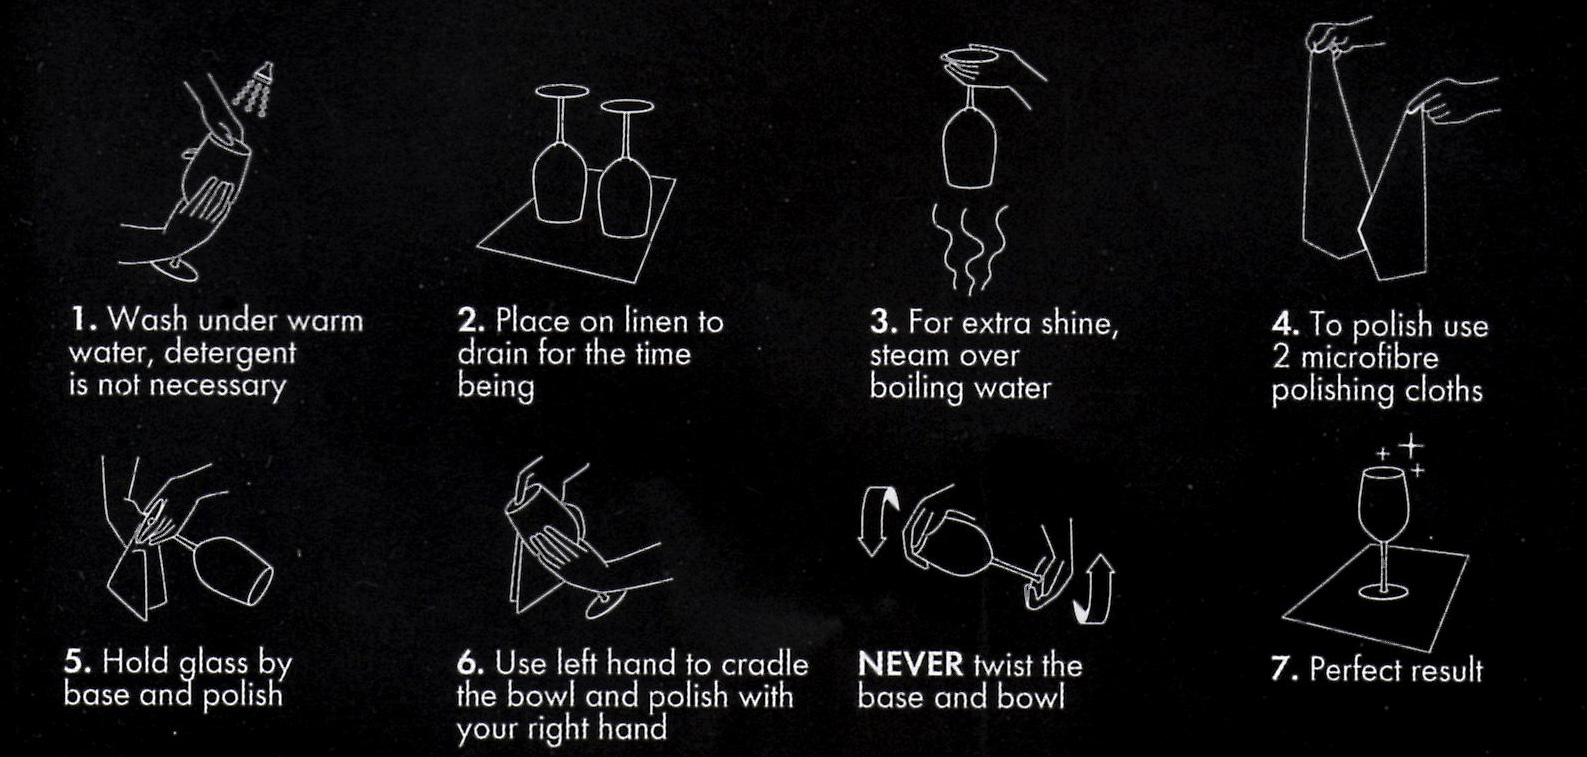 Riedel instructions